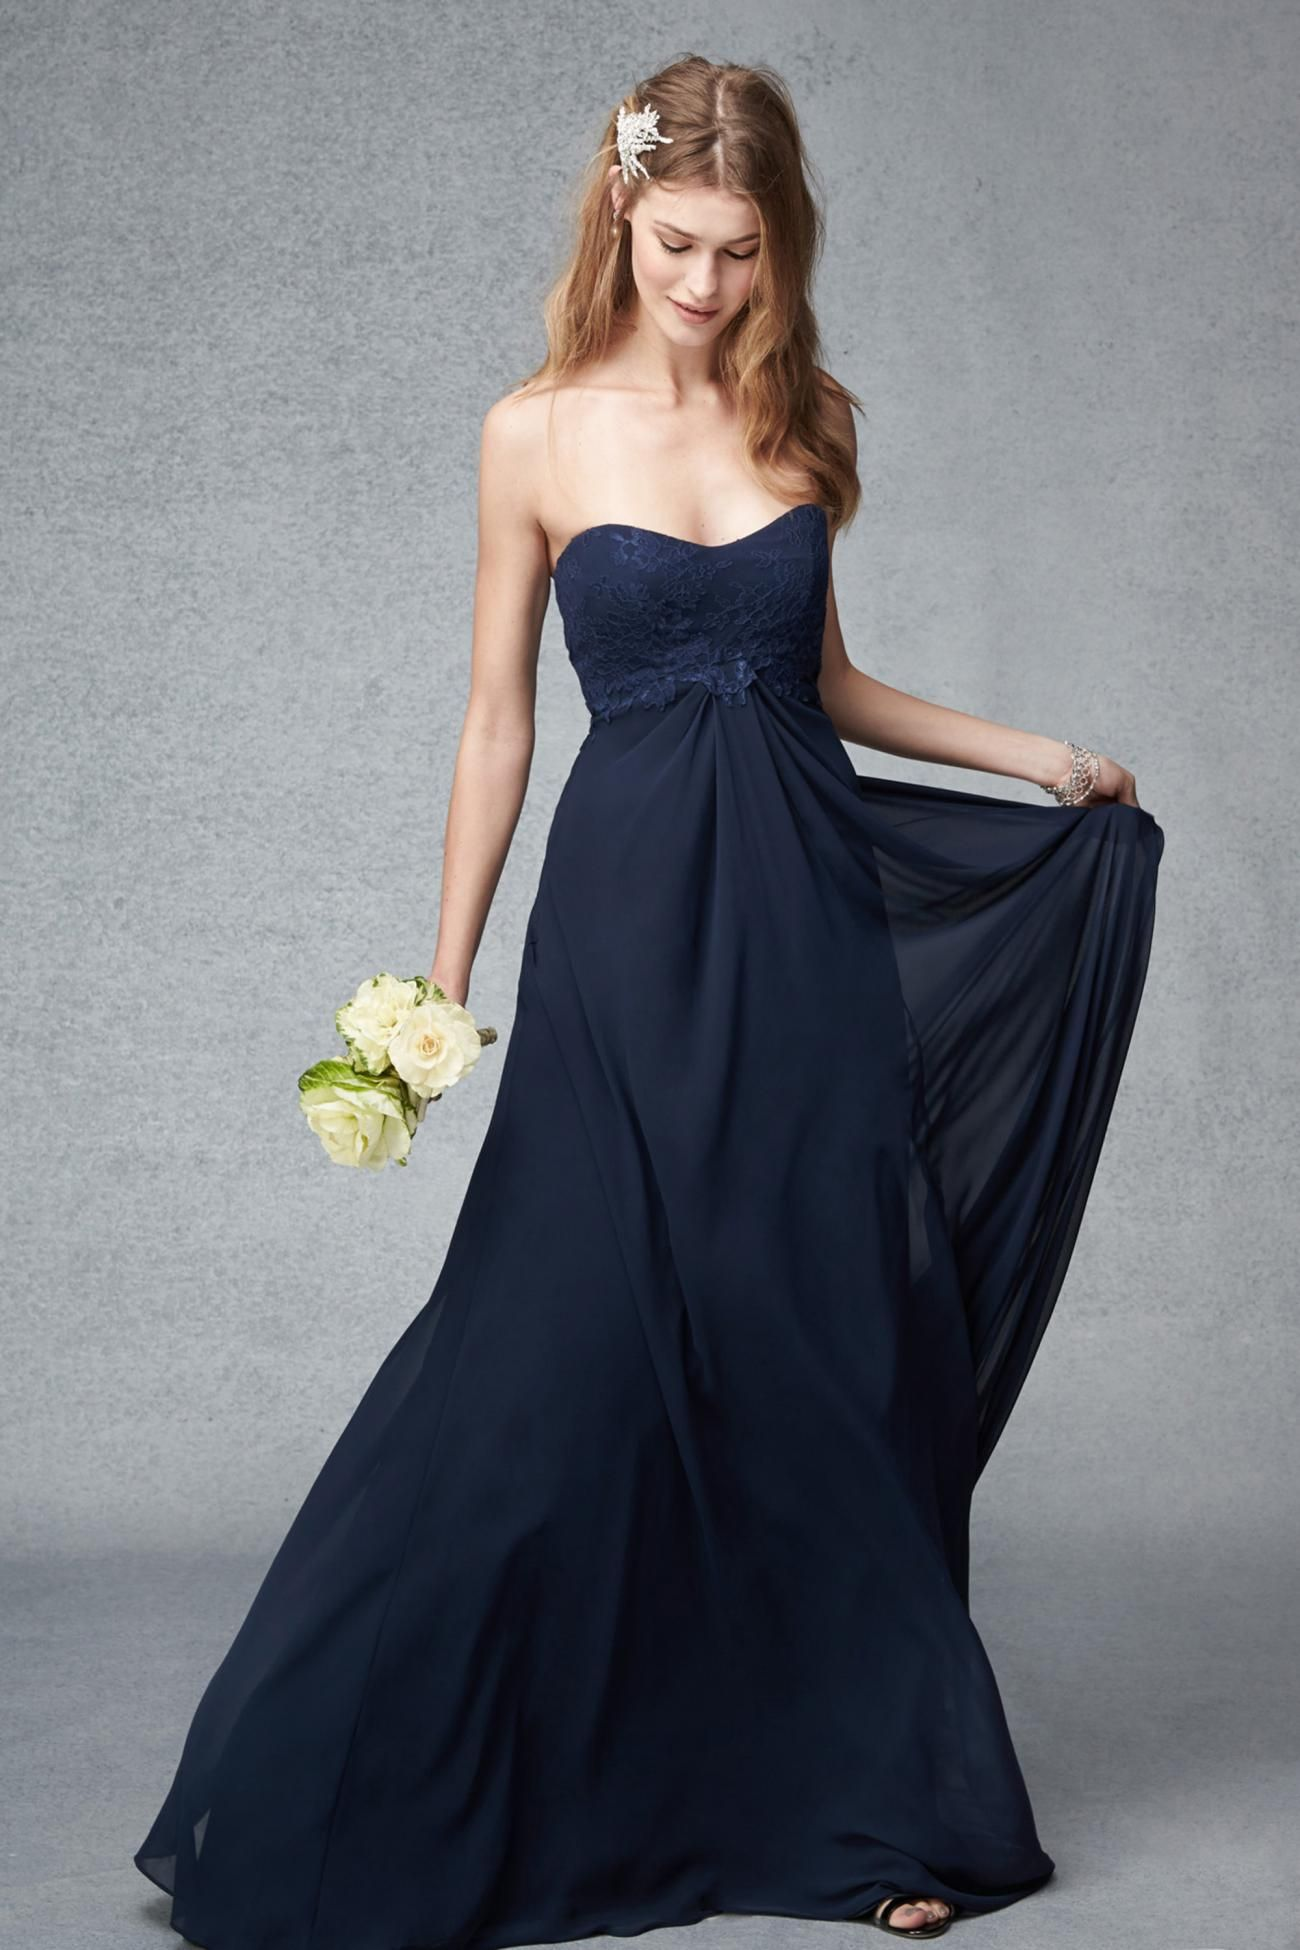 Finest navy bridesmaid dresses ideas strapless navy blue finest navy bridesmaid dresses ideas strapless navy blue bridesmaid dresses ombrellifo Image collections